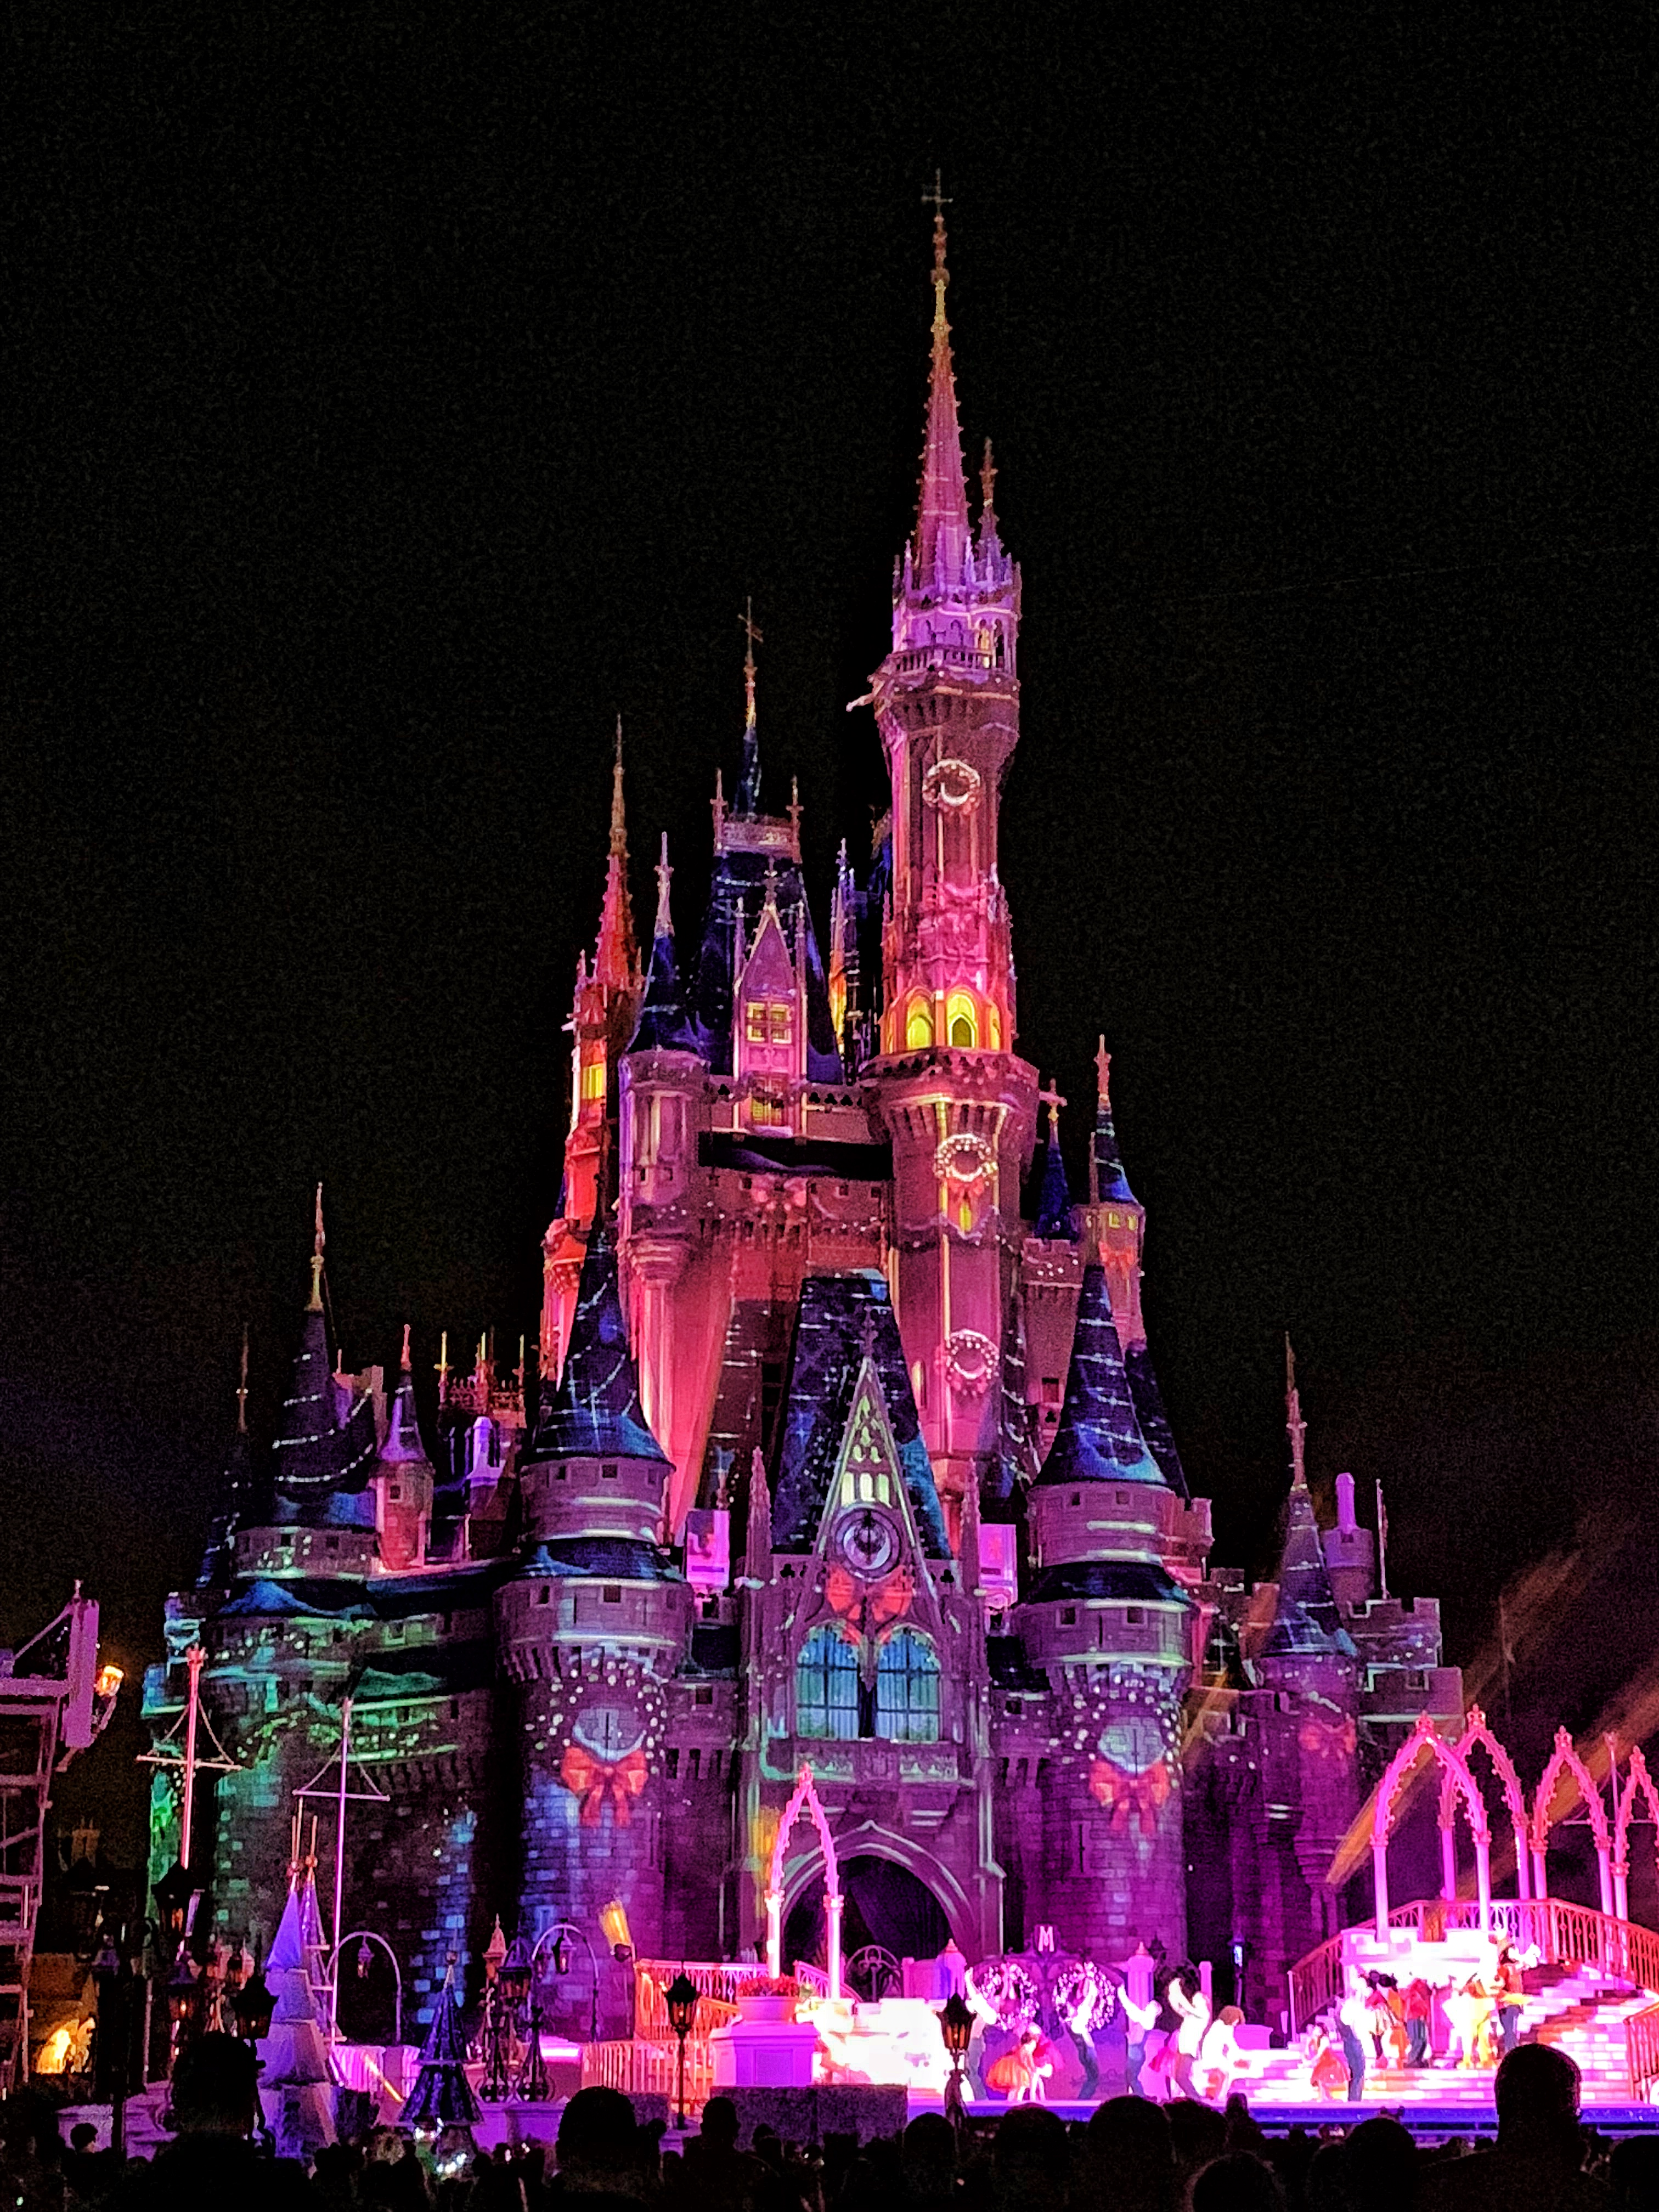 Vegan Food Guide to Mickey's Very Merry Christmas Party in the Magic Kingdom